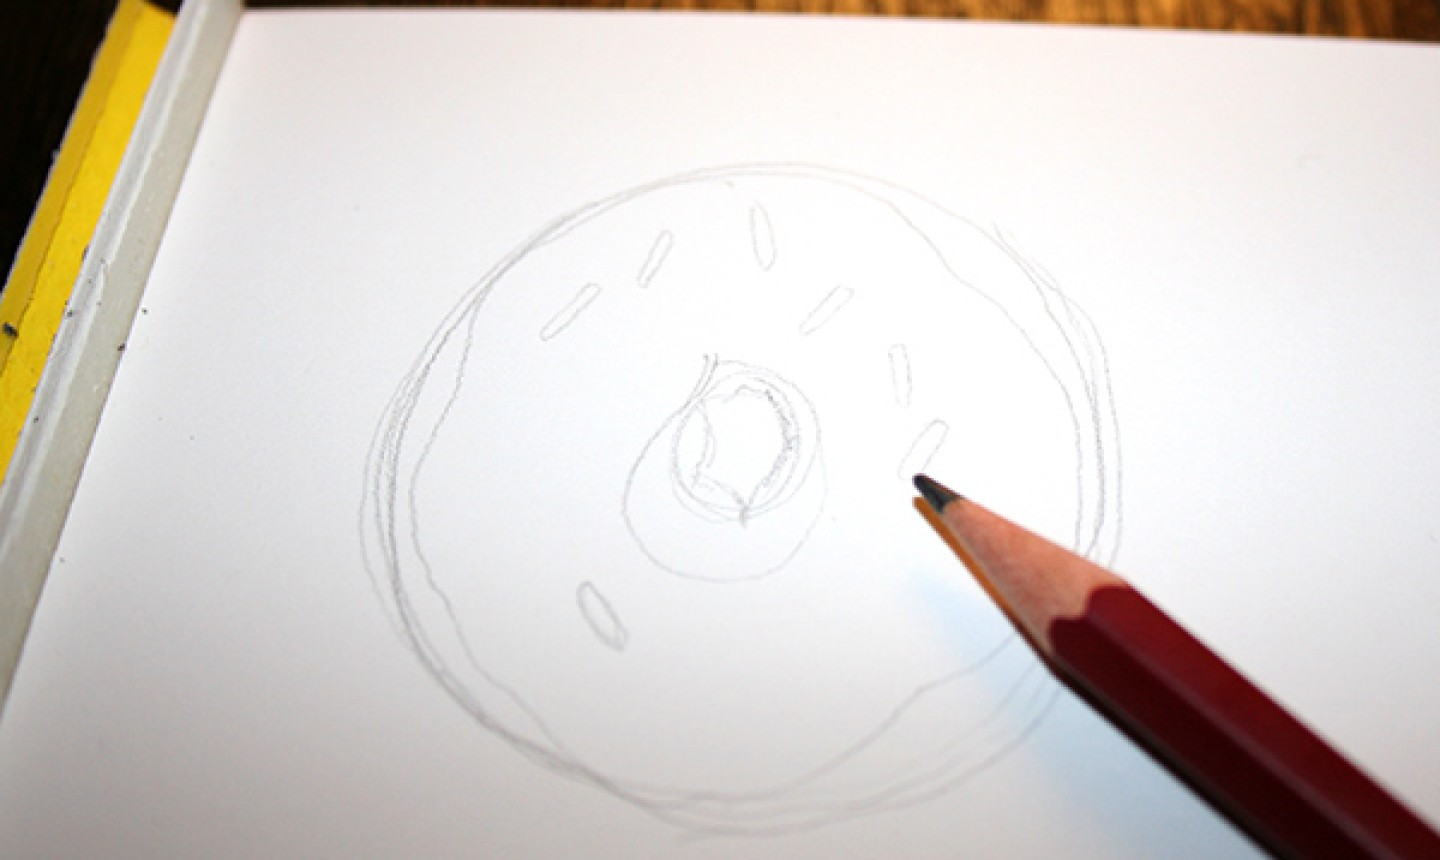 Penciled outline of donut